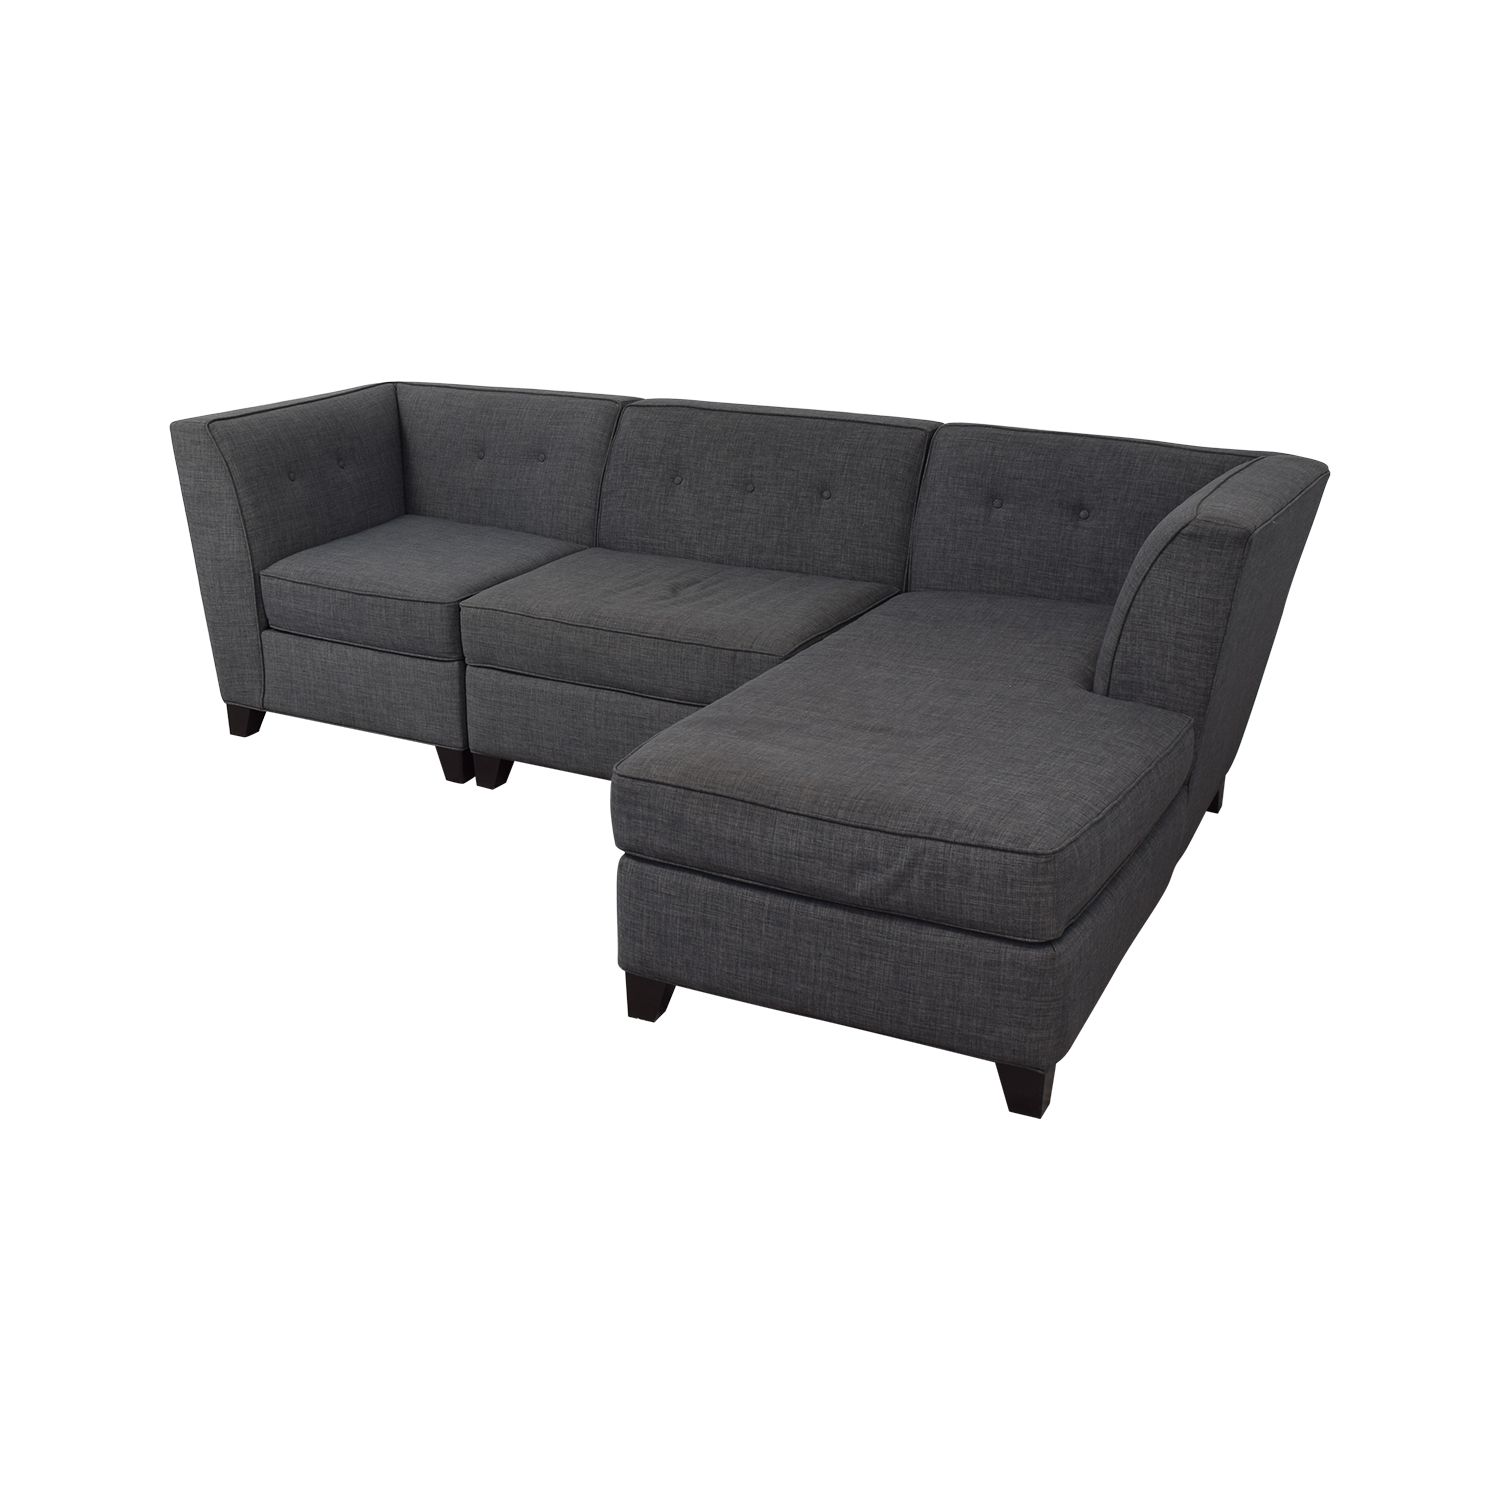 Macy's Macy's Three-Piece Chaise Sectional Sofa dimensions